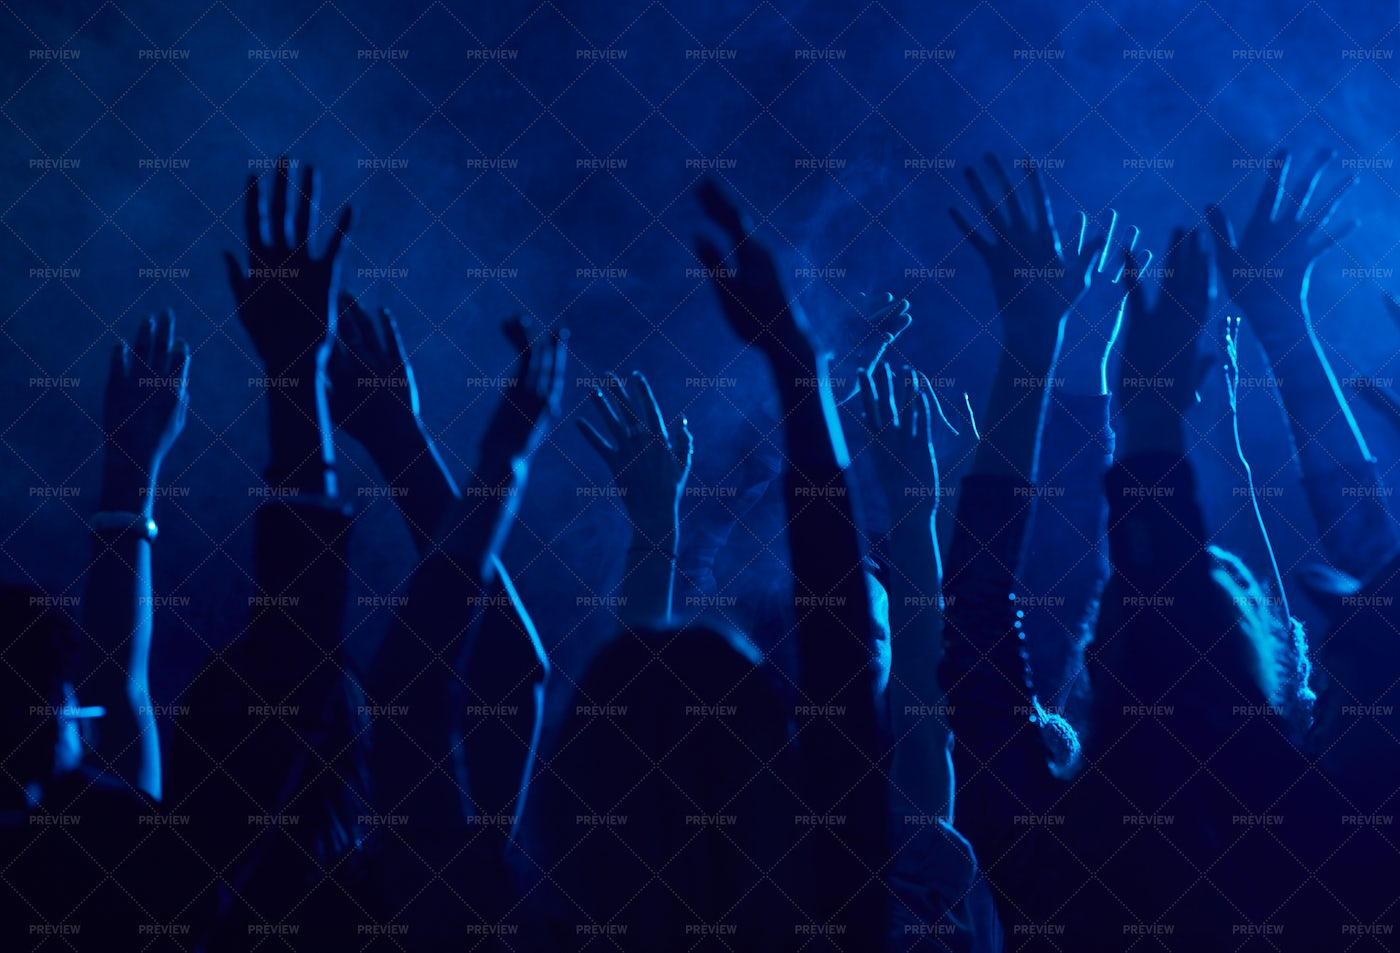 Crowd Dancing In Nightclub: Stock Photos